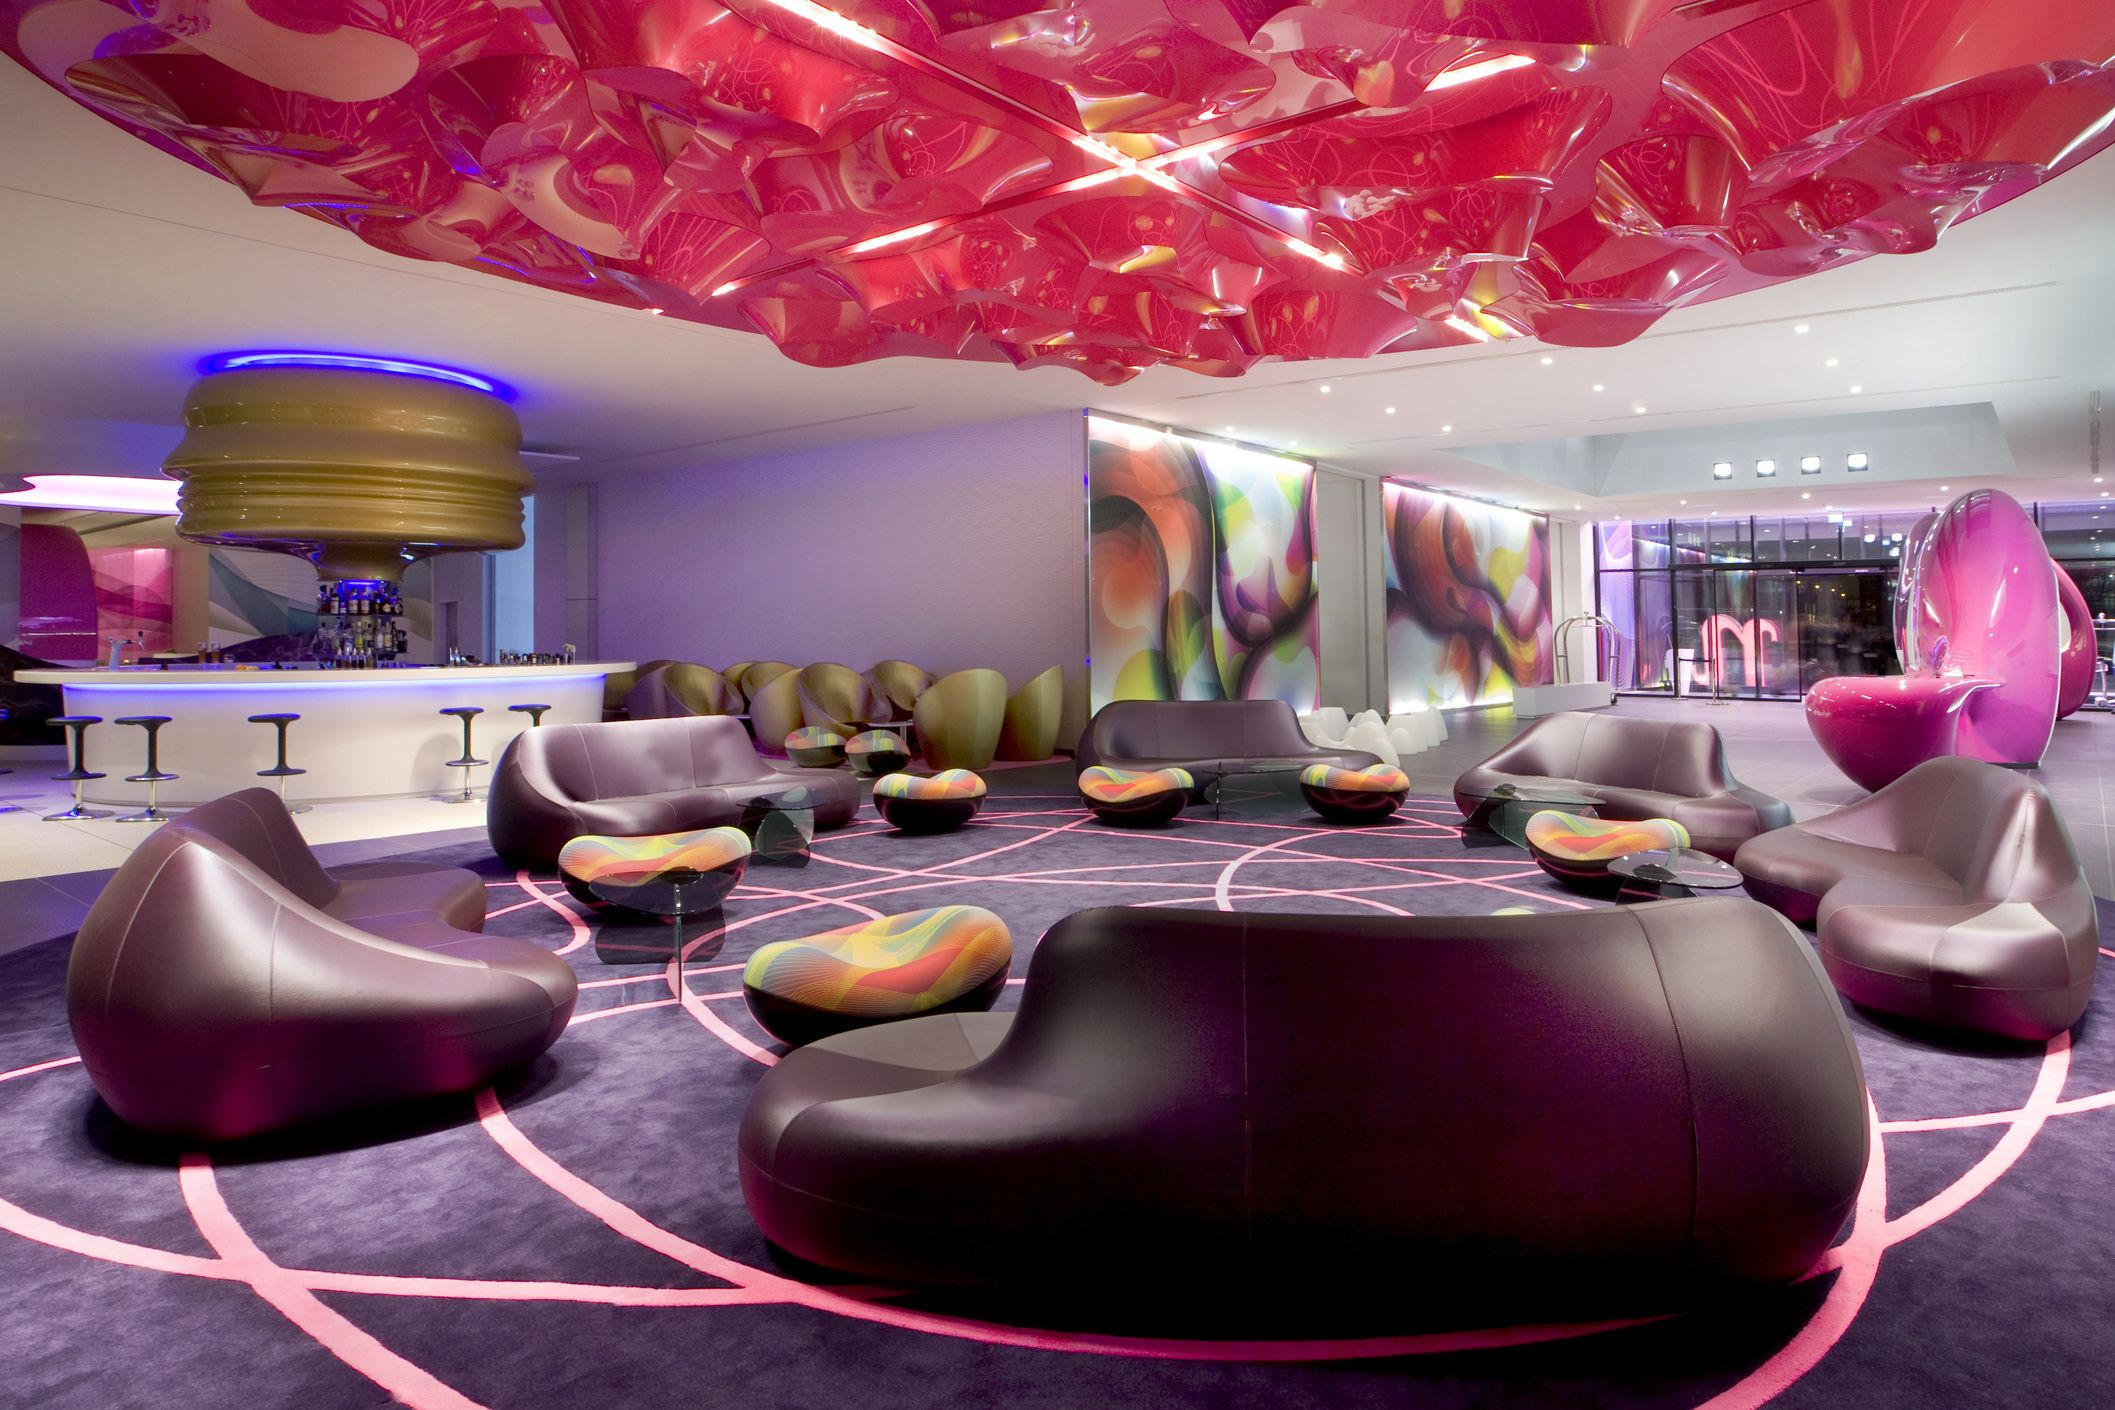 nhow hotels part of NH Hotel Group | NH fans | Berlin hotel